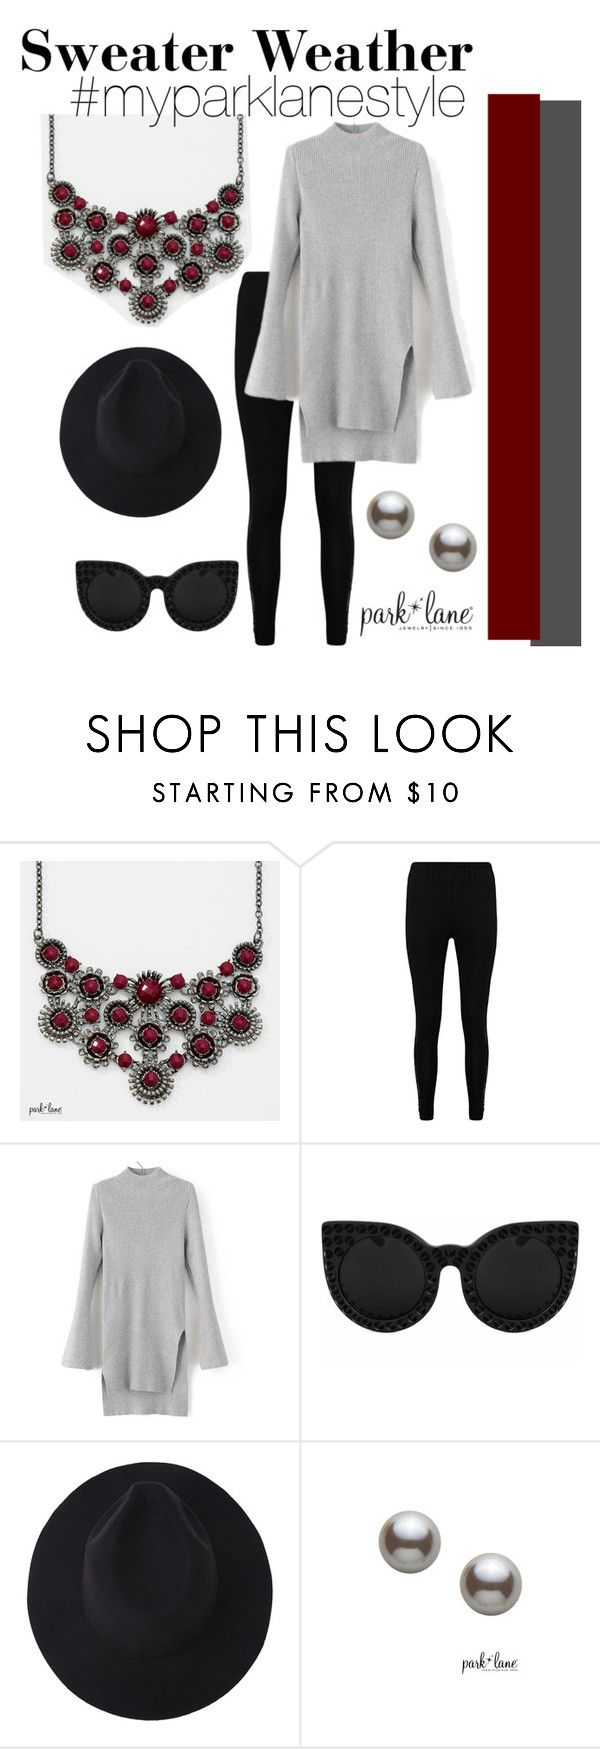 """""""Bundle Up in Park Lane!"""" by parklanejewelry on Polyvore featuring Boohoo and Delalle"""